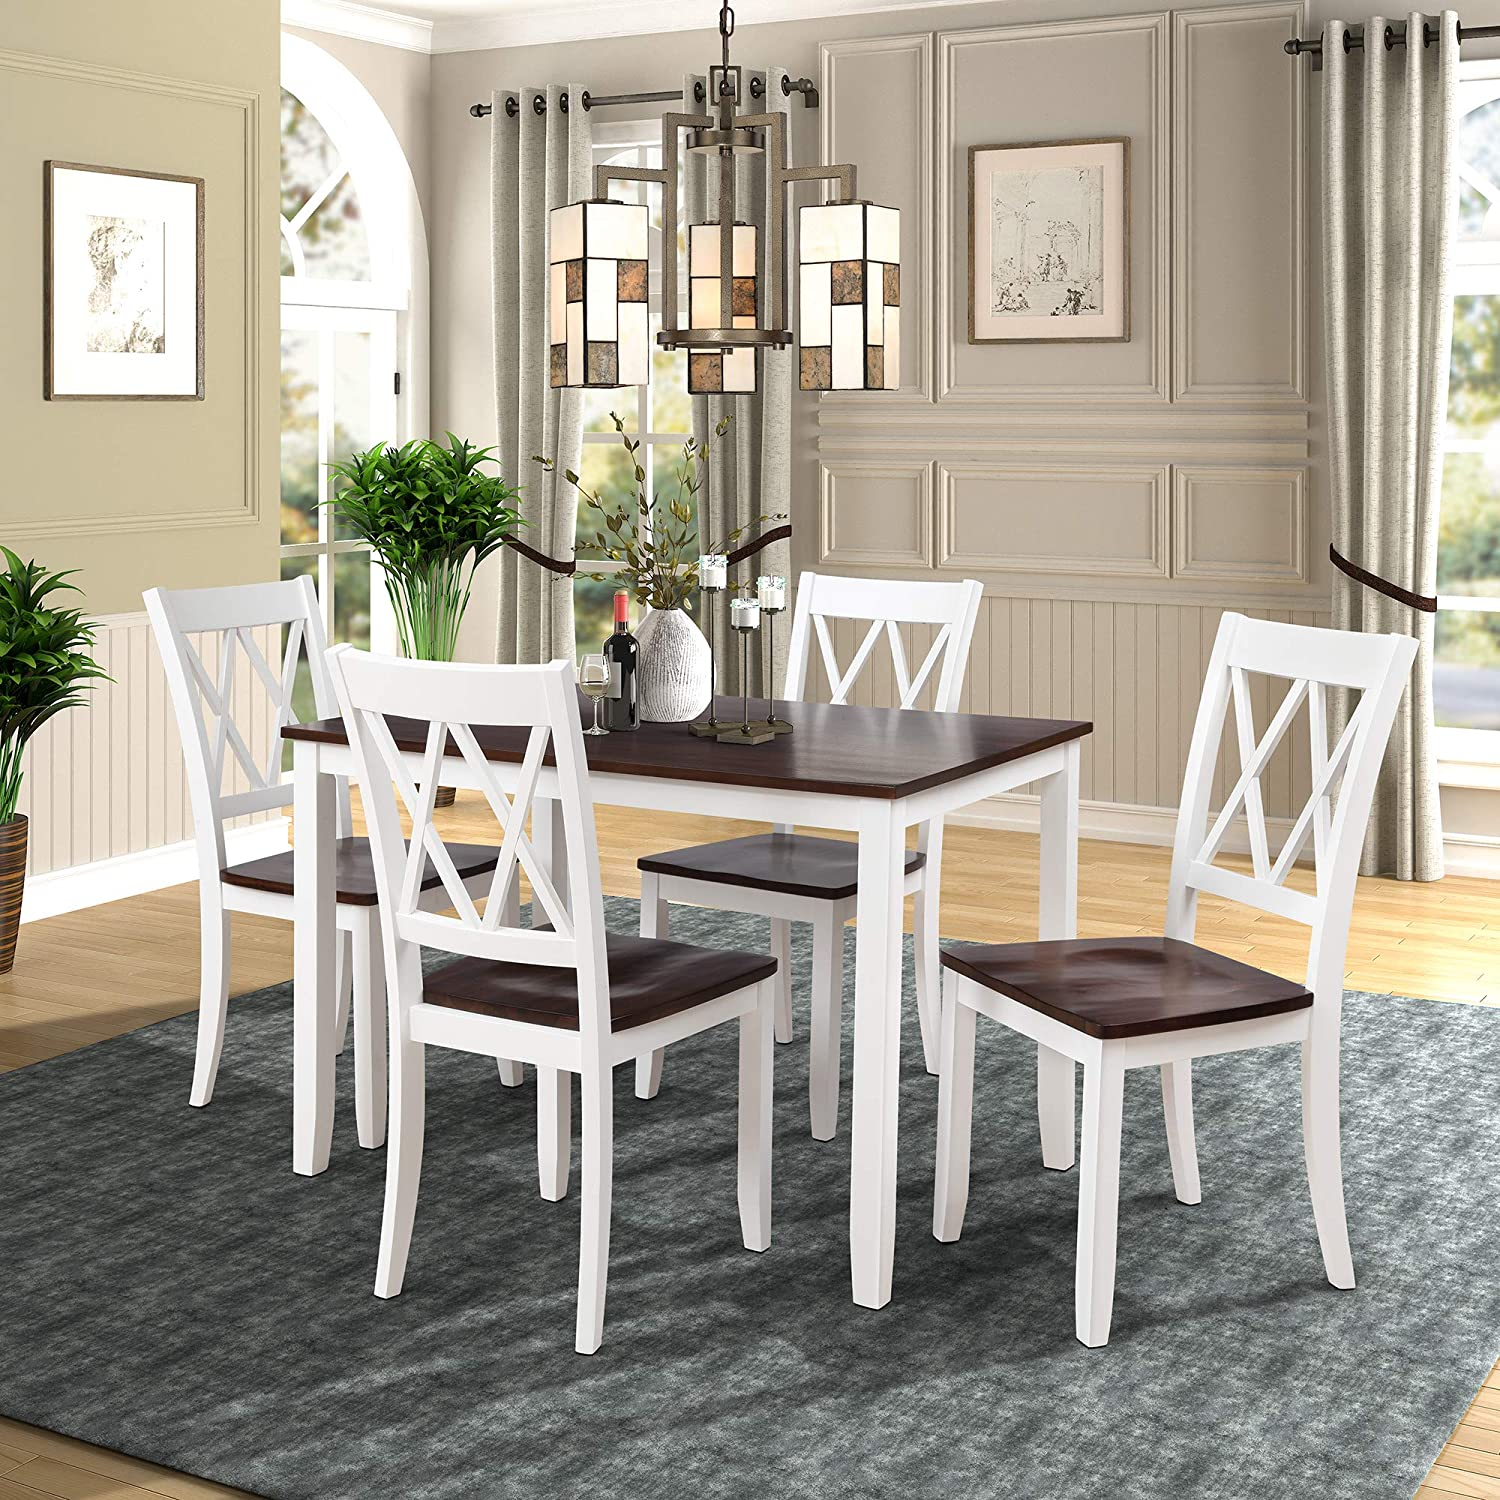 Amazon Com Merax Dining Table Set Kitchen Dining Table Set For 4 Wood Table And Chairs Set White Cherry Table Chair Sets